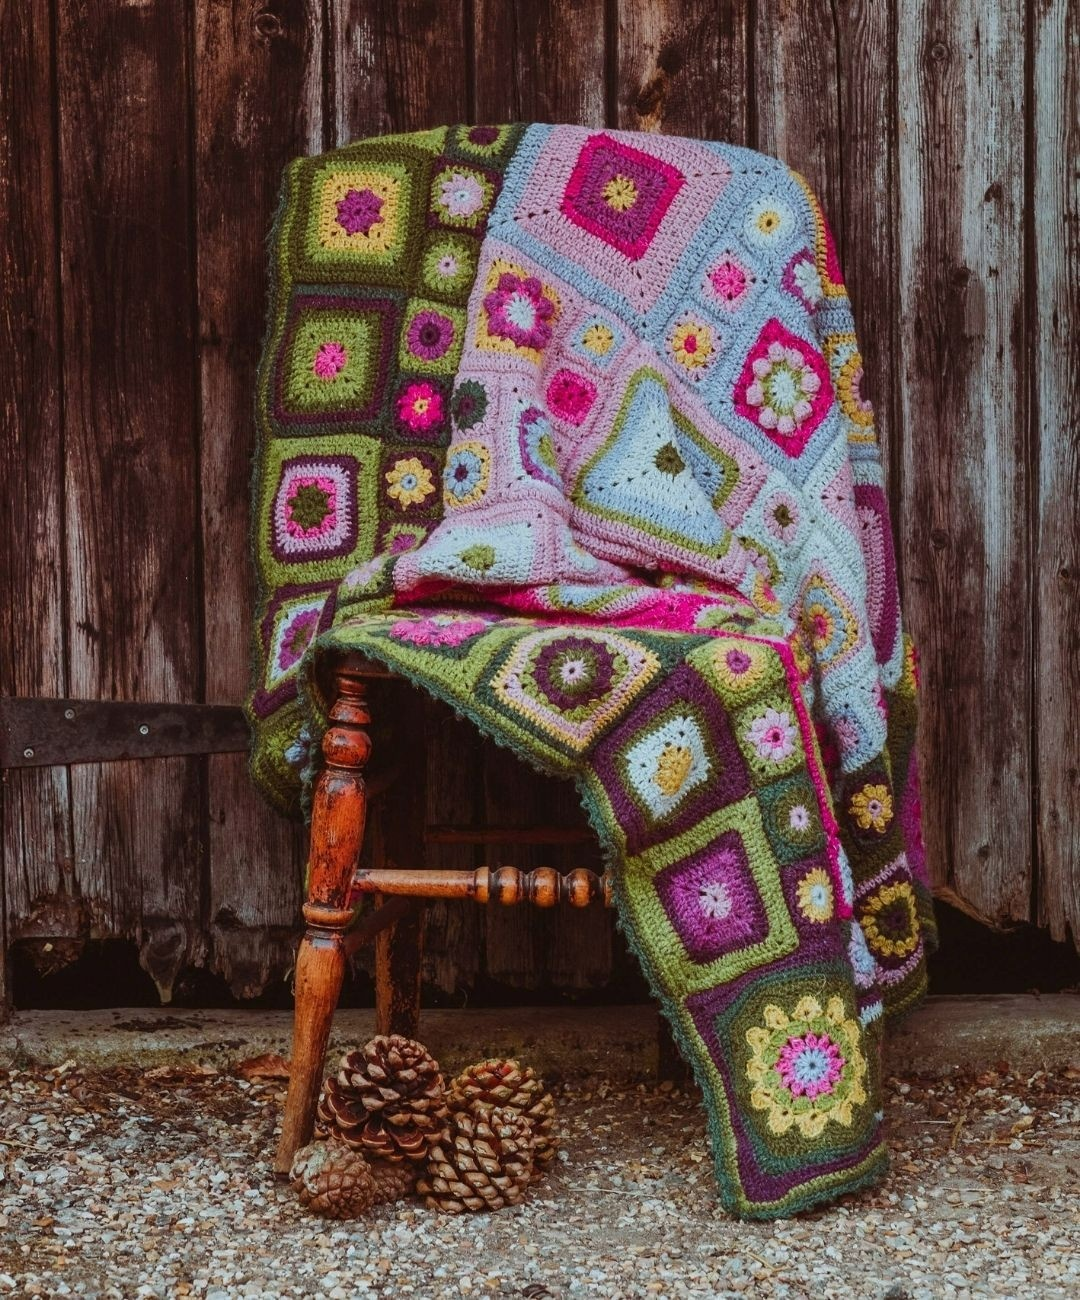 Homage crochet blanket over a chair